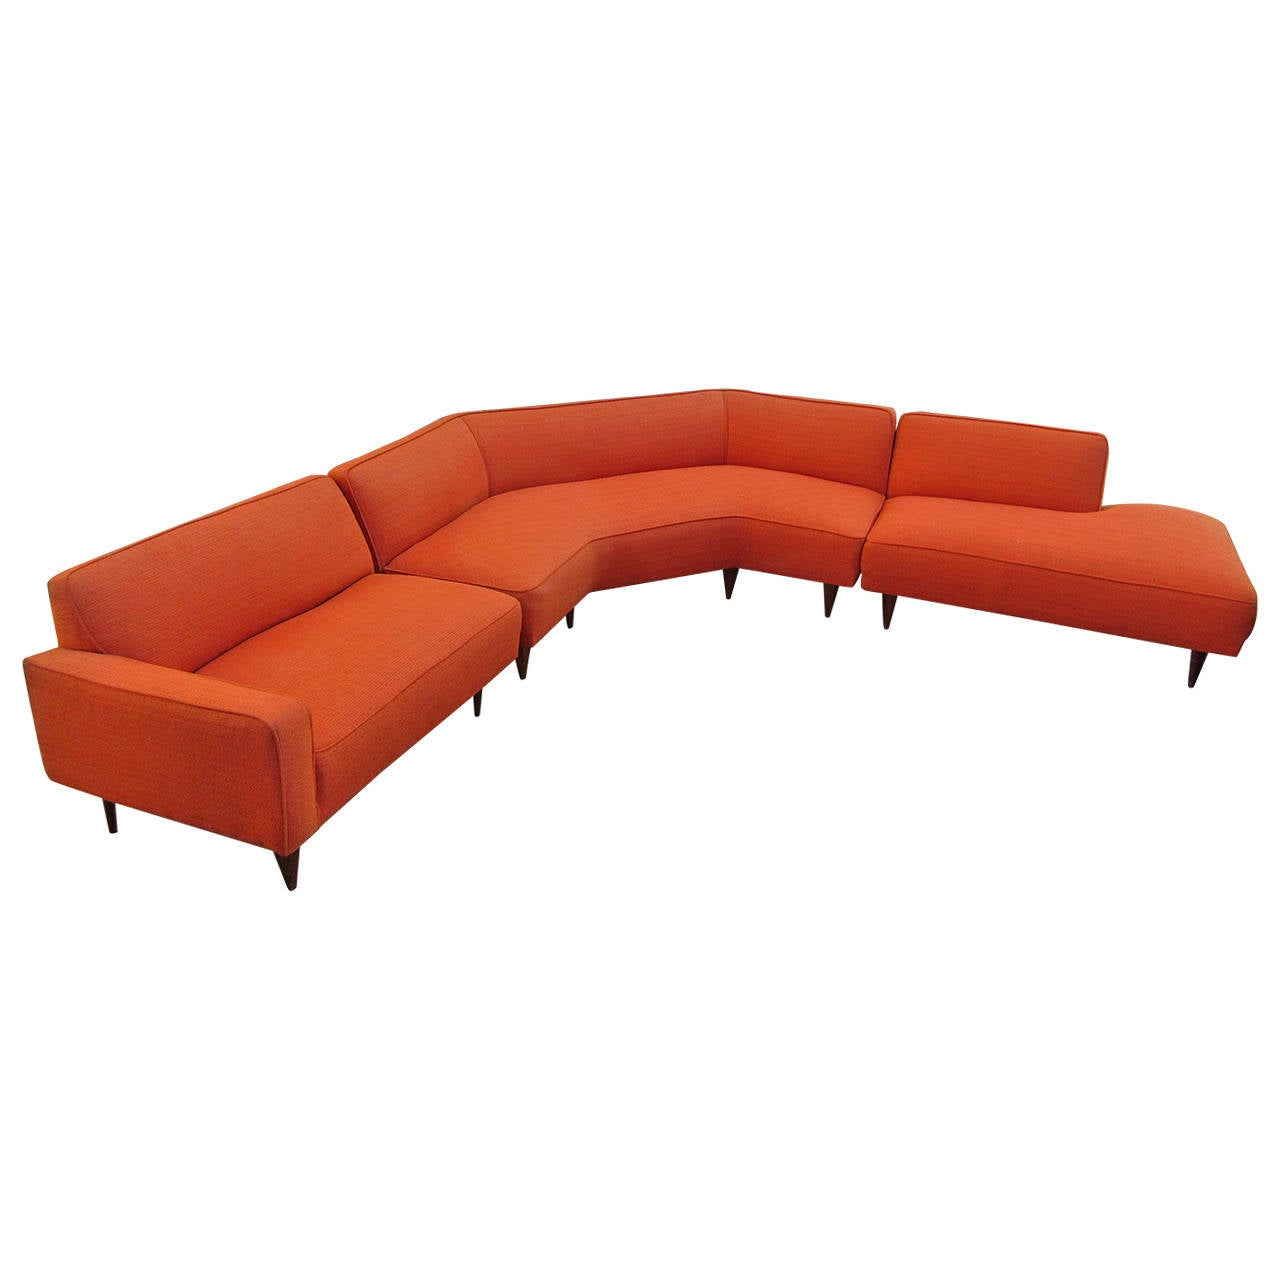 1950s three piece sectional sofa at 1stdibs for 50s sectional sofa